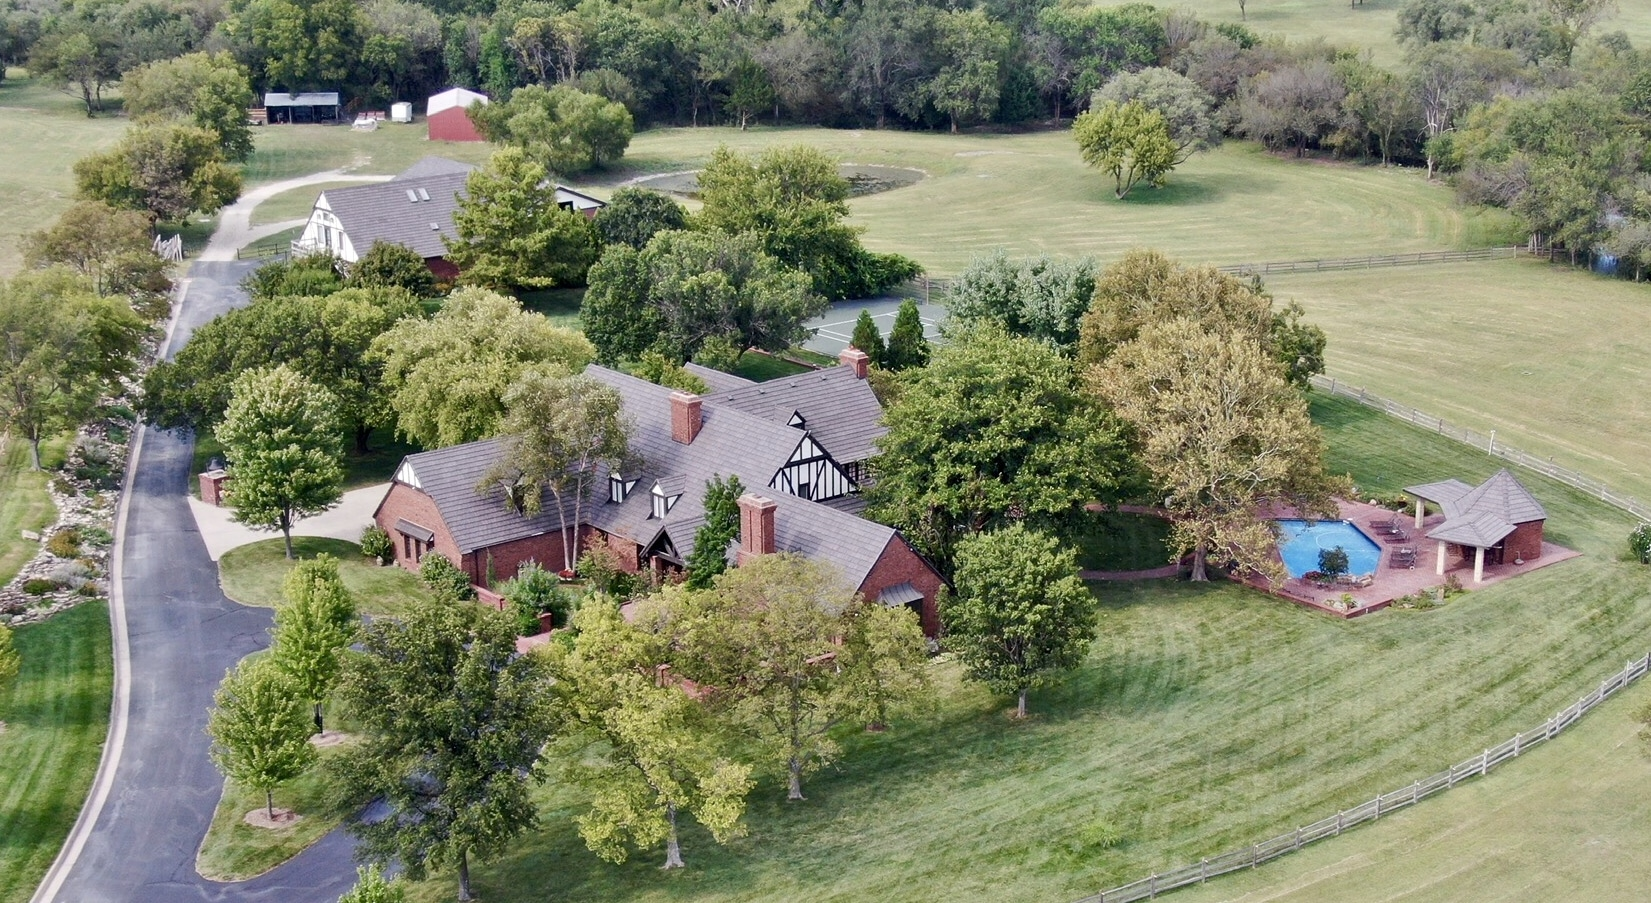 A higher view of the Shelton's property, complete with DaVinci's Bellaforté Shake on all the buildings.